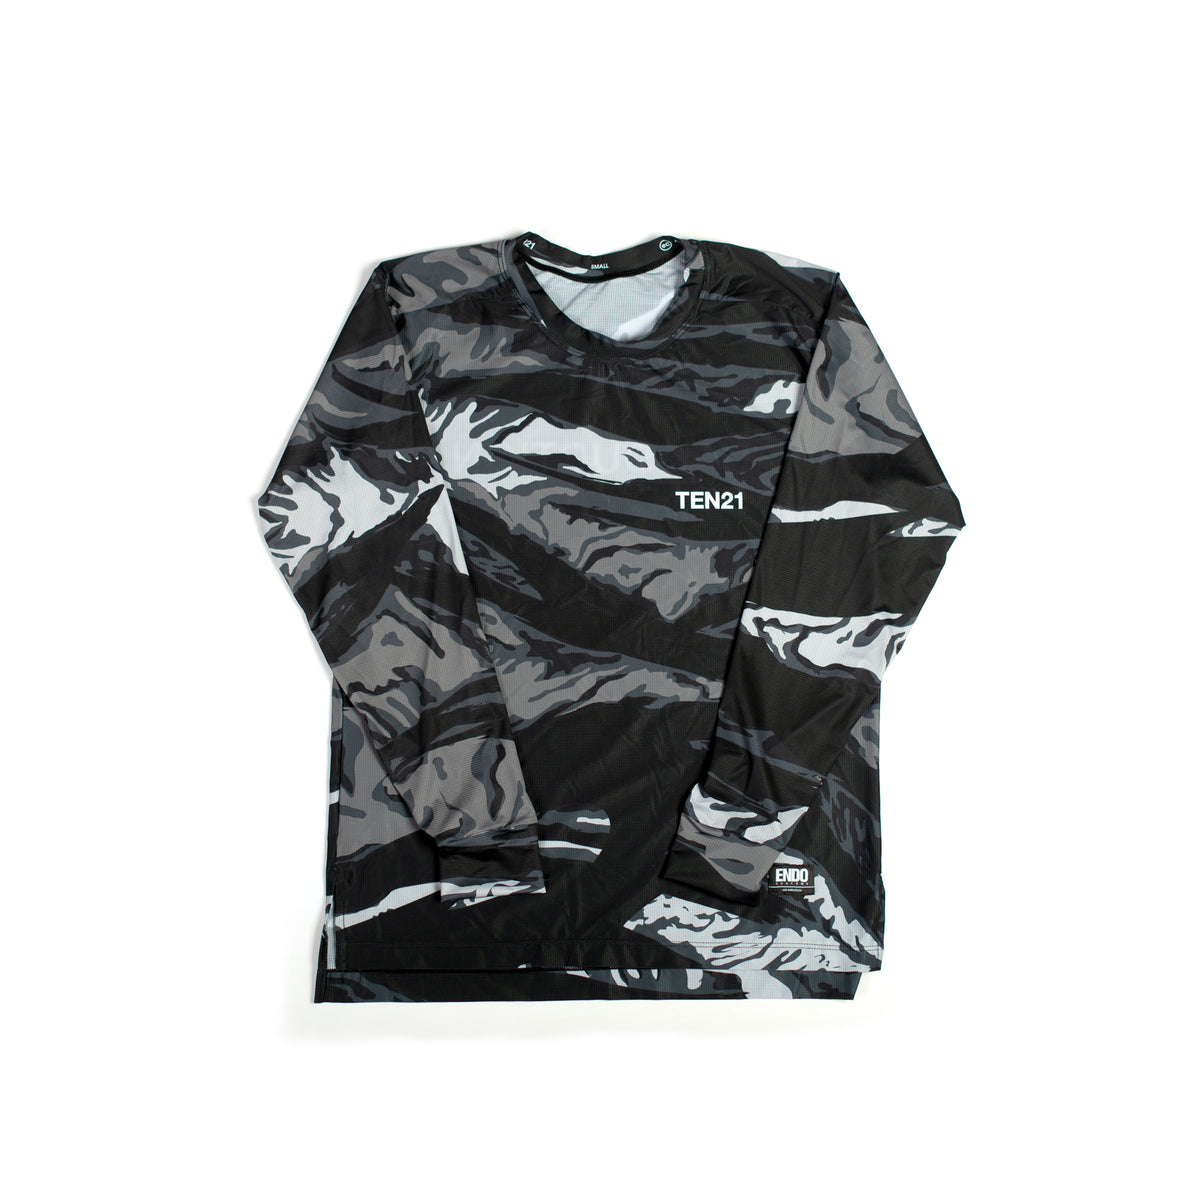 TEN21 - VIRGIL LONG SLEEVE TECH TEE - GREY CAMO